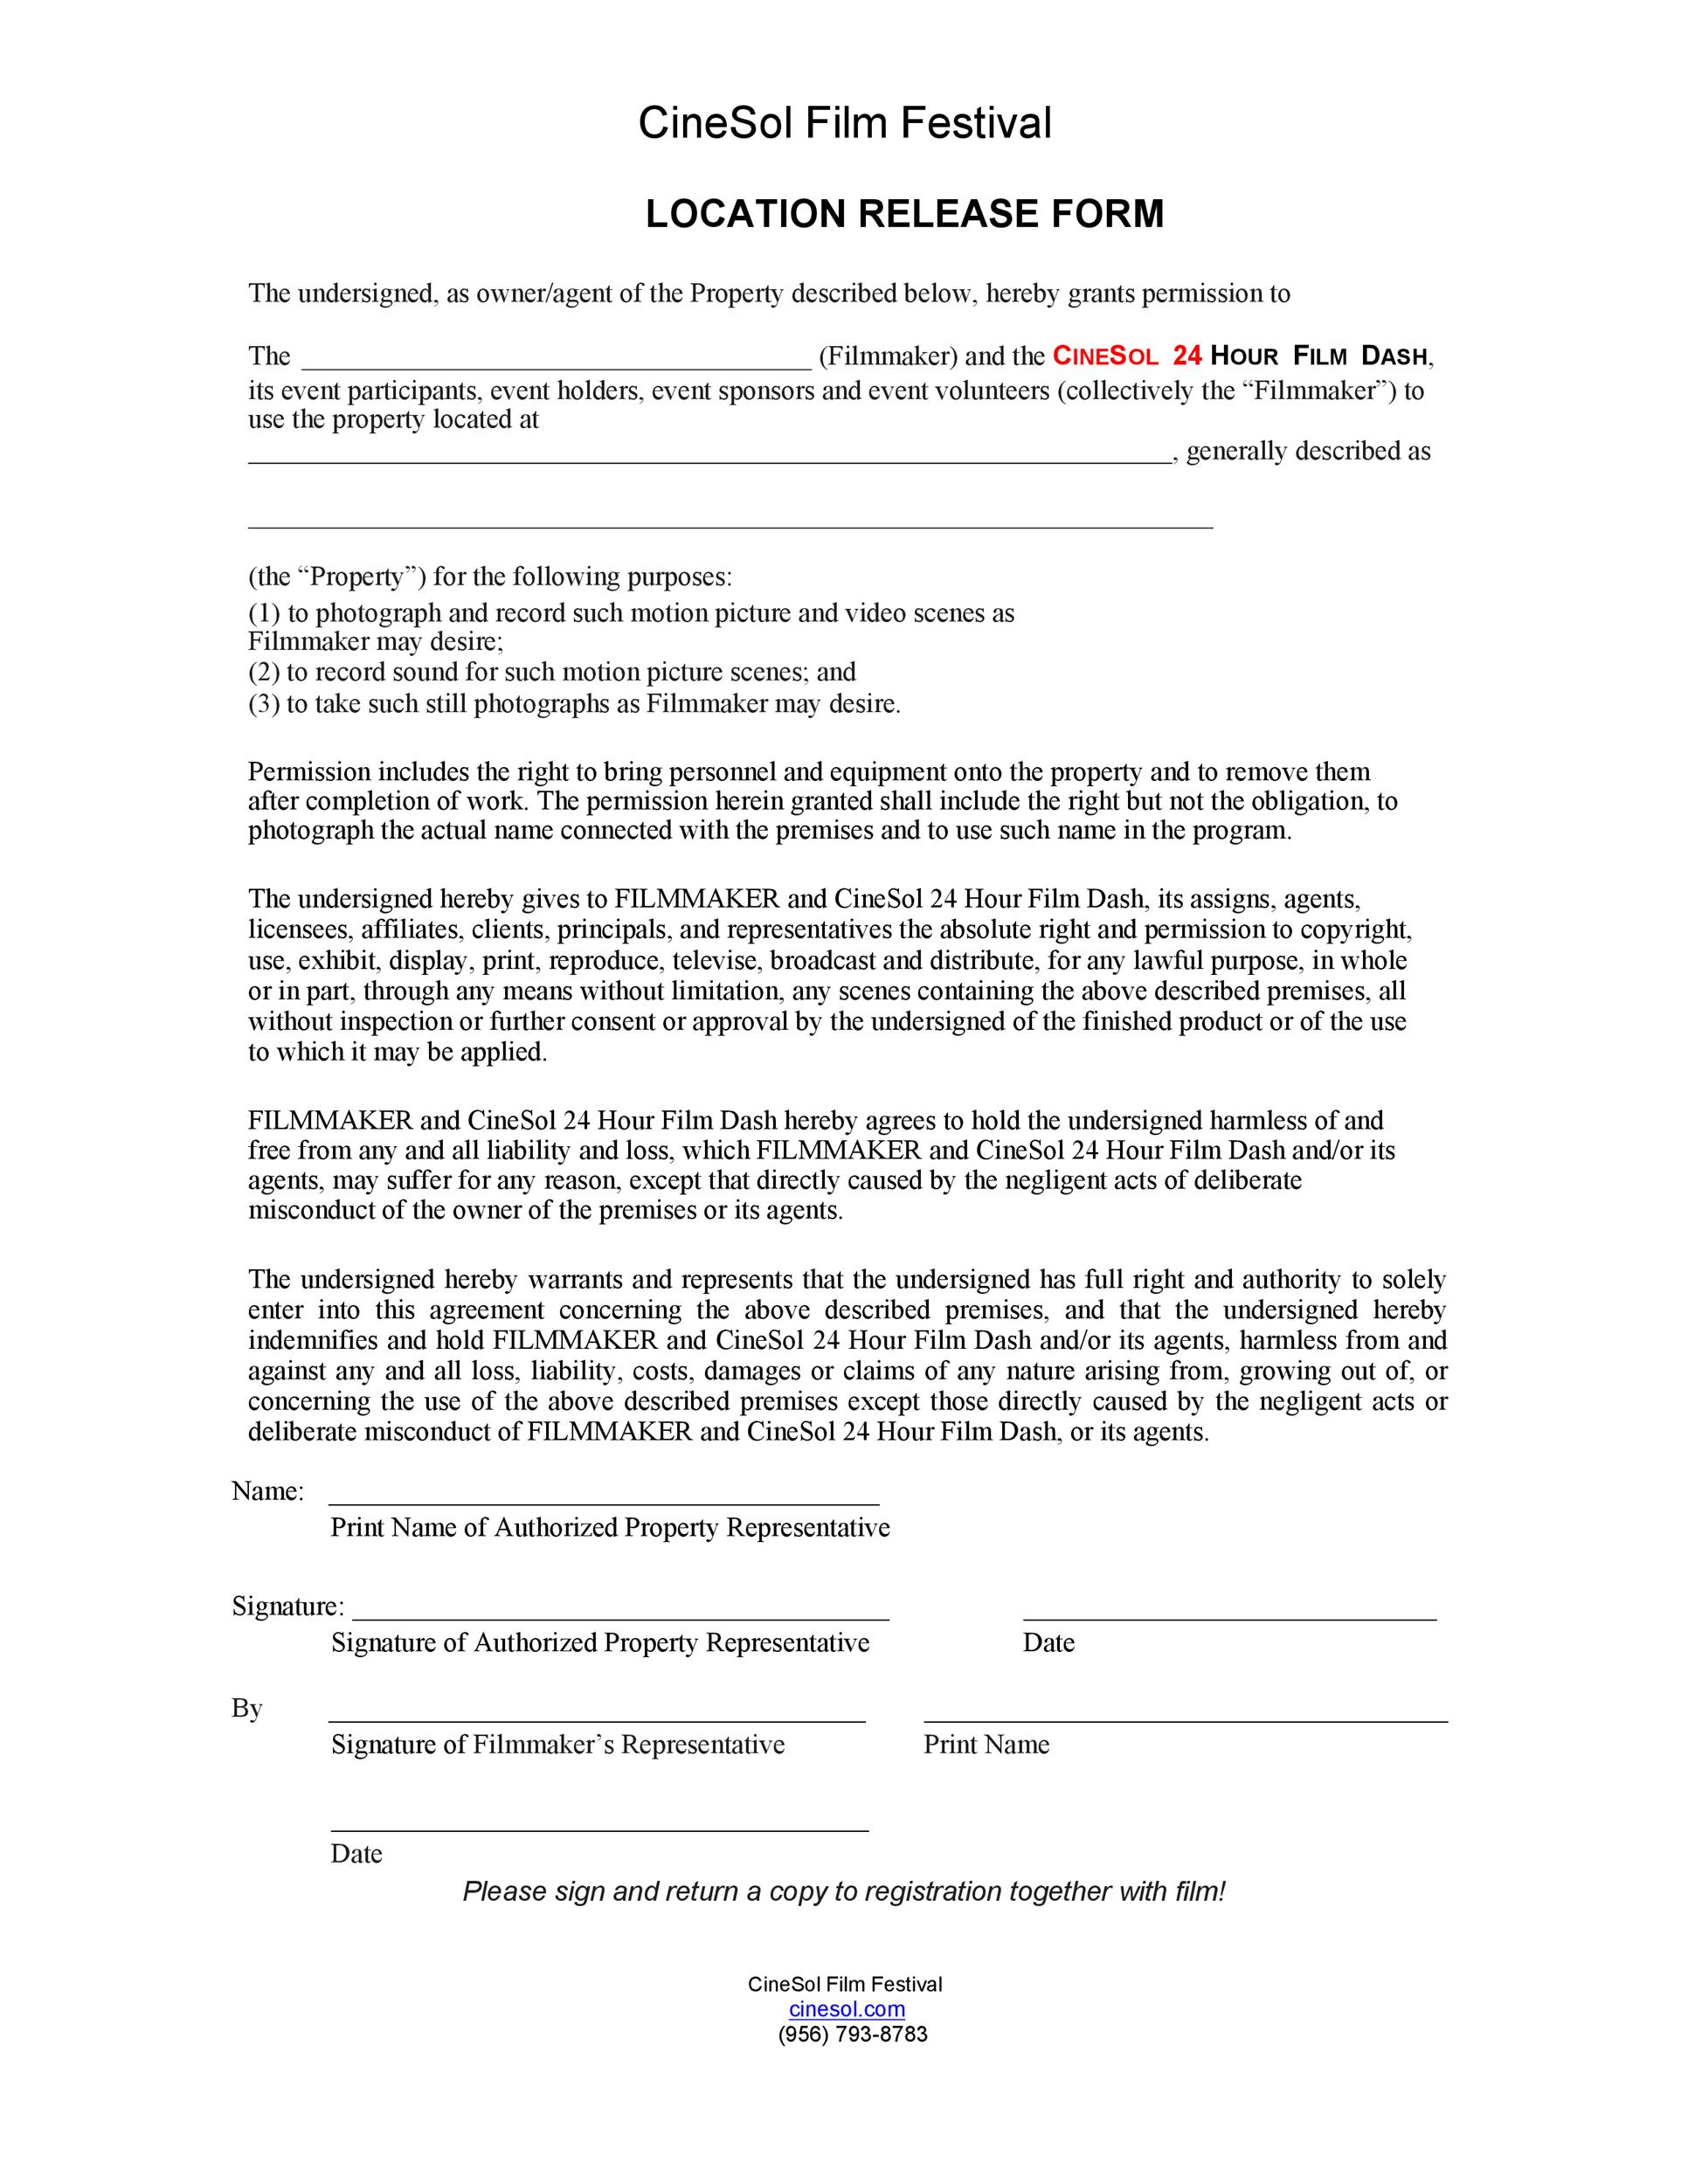 Free location release form 11